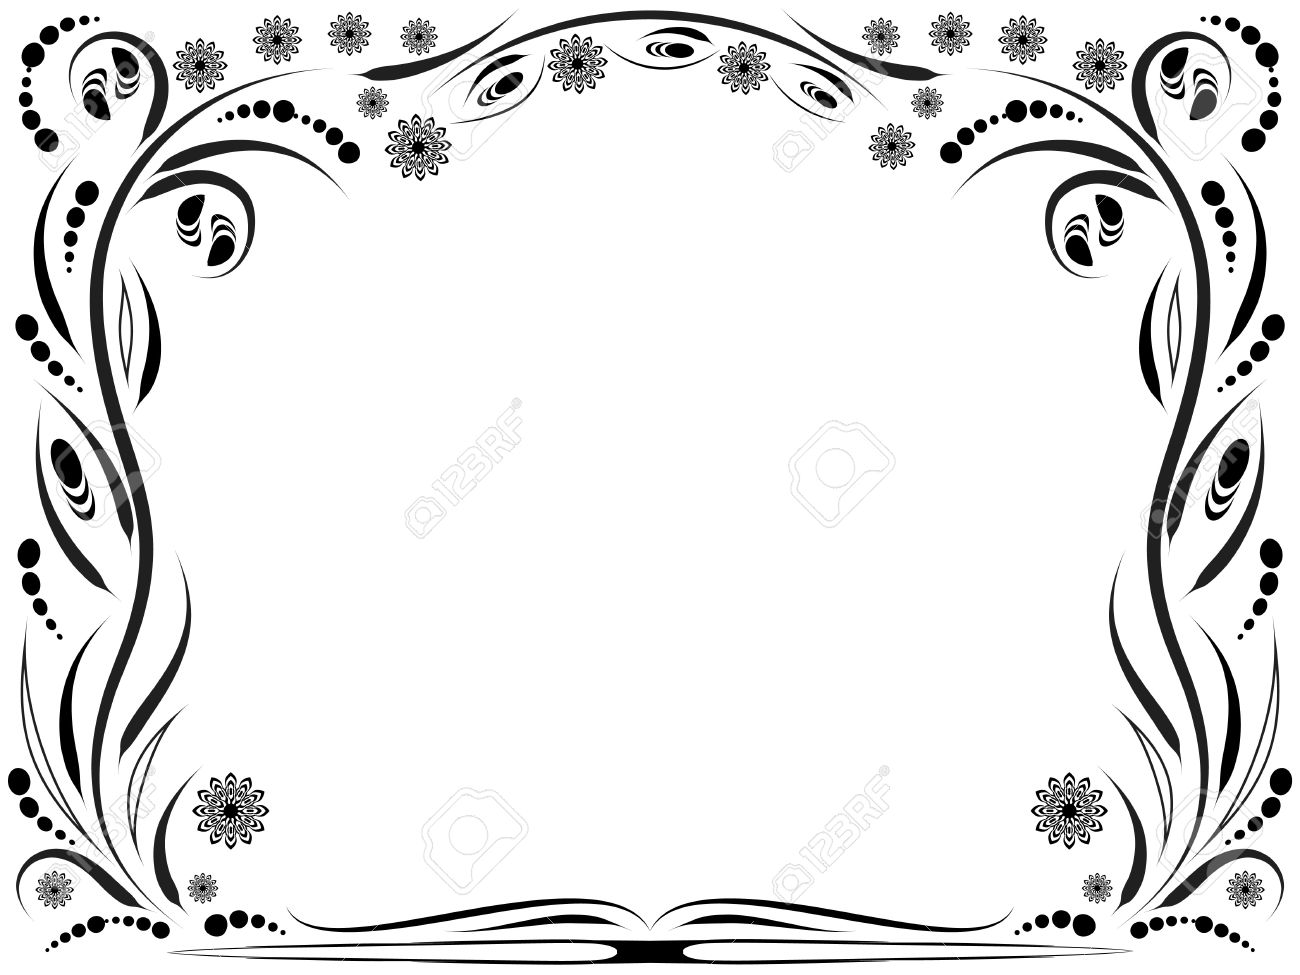 fleur noir et blanc clipart 8 clipart station. Black Bedroom Furniture Sets. Home Design Ideas